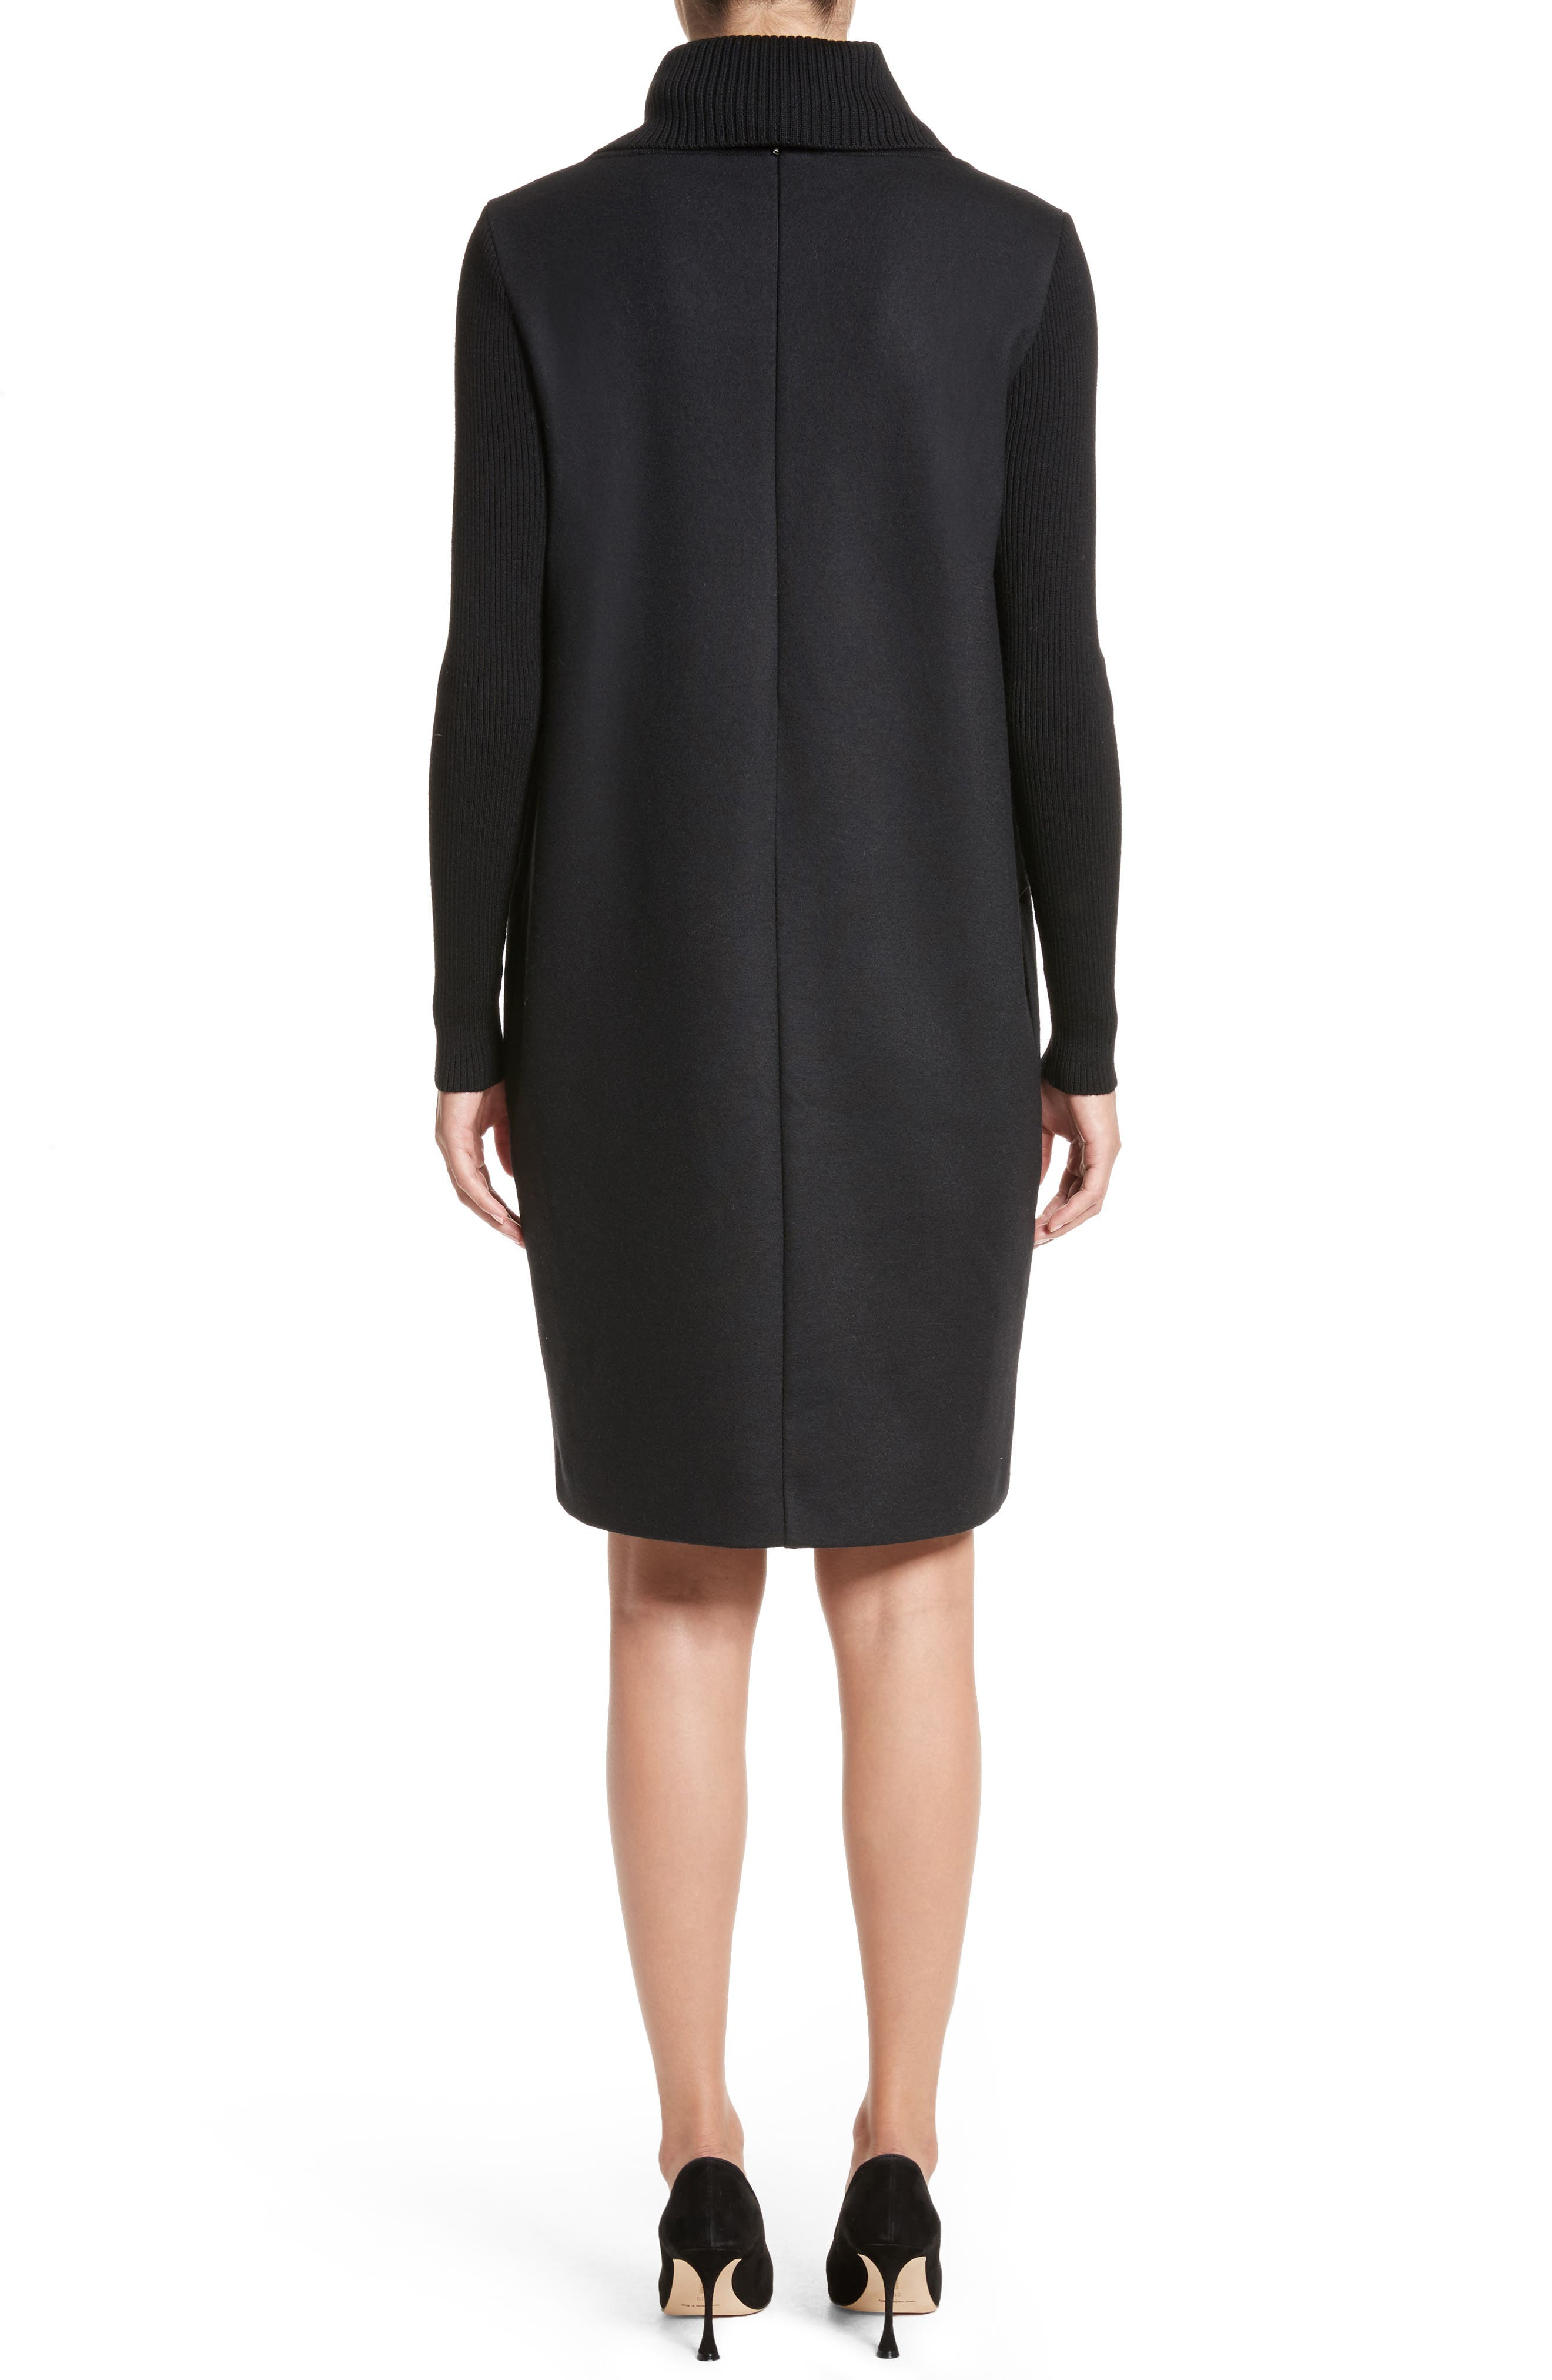 Cancan Wool Jersey Dress with Removable Knit Cowl,                             Alternate thumbnail 2, color,                             001